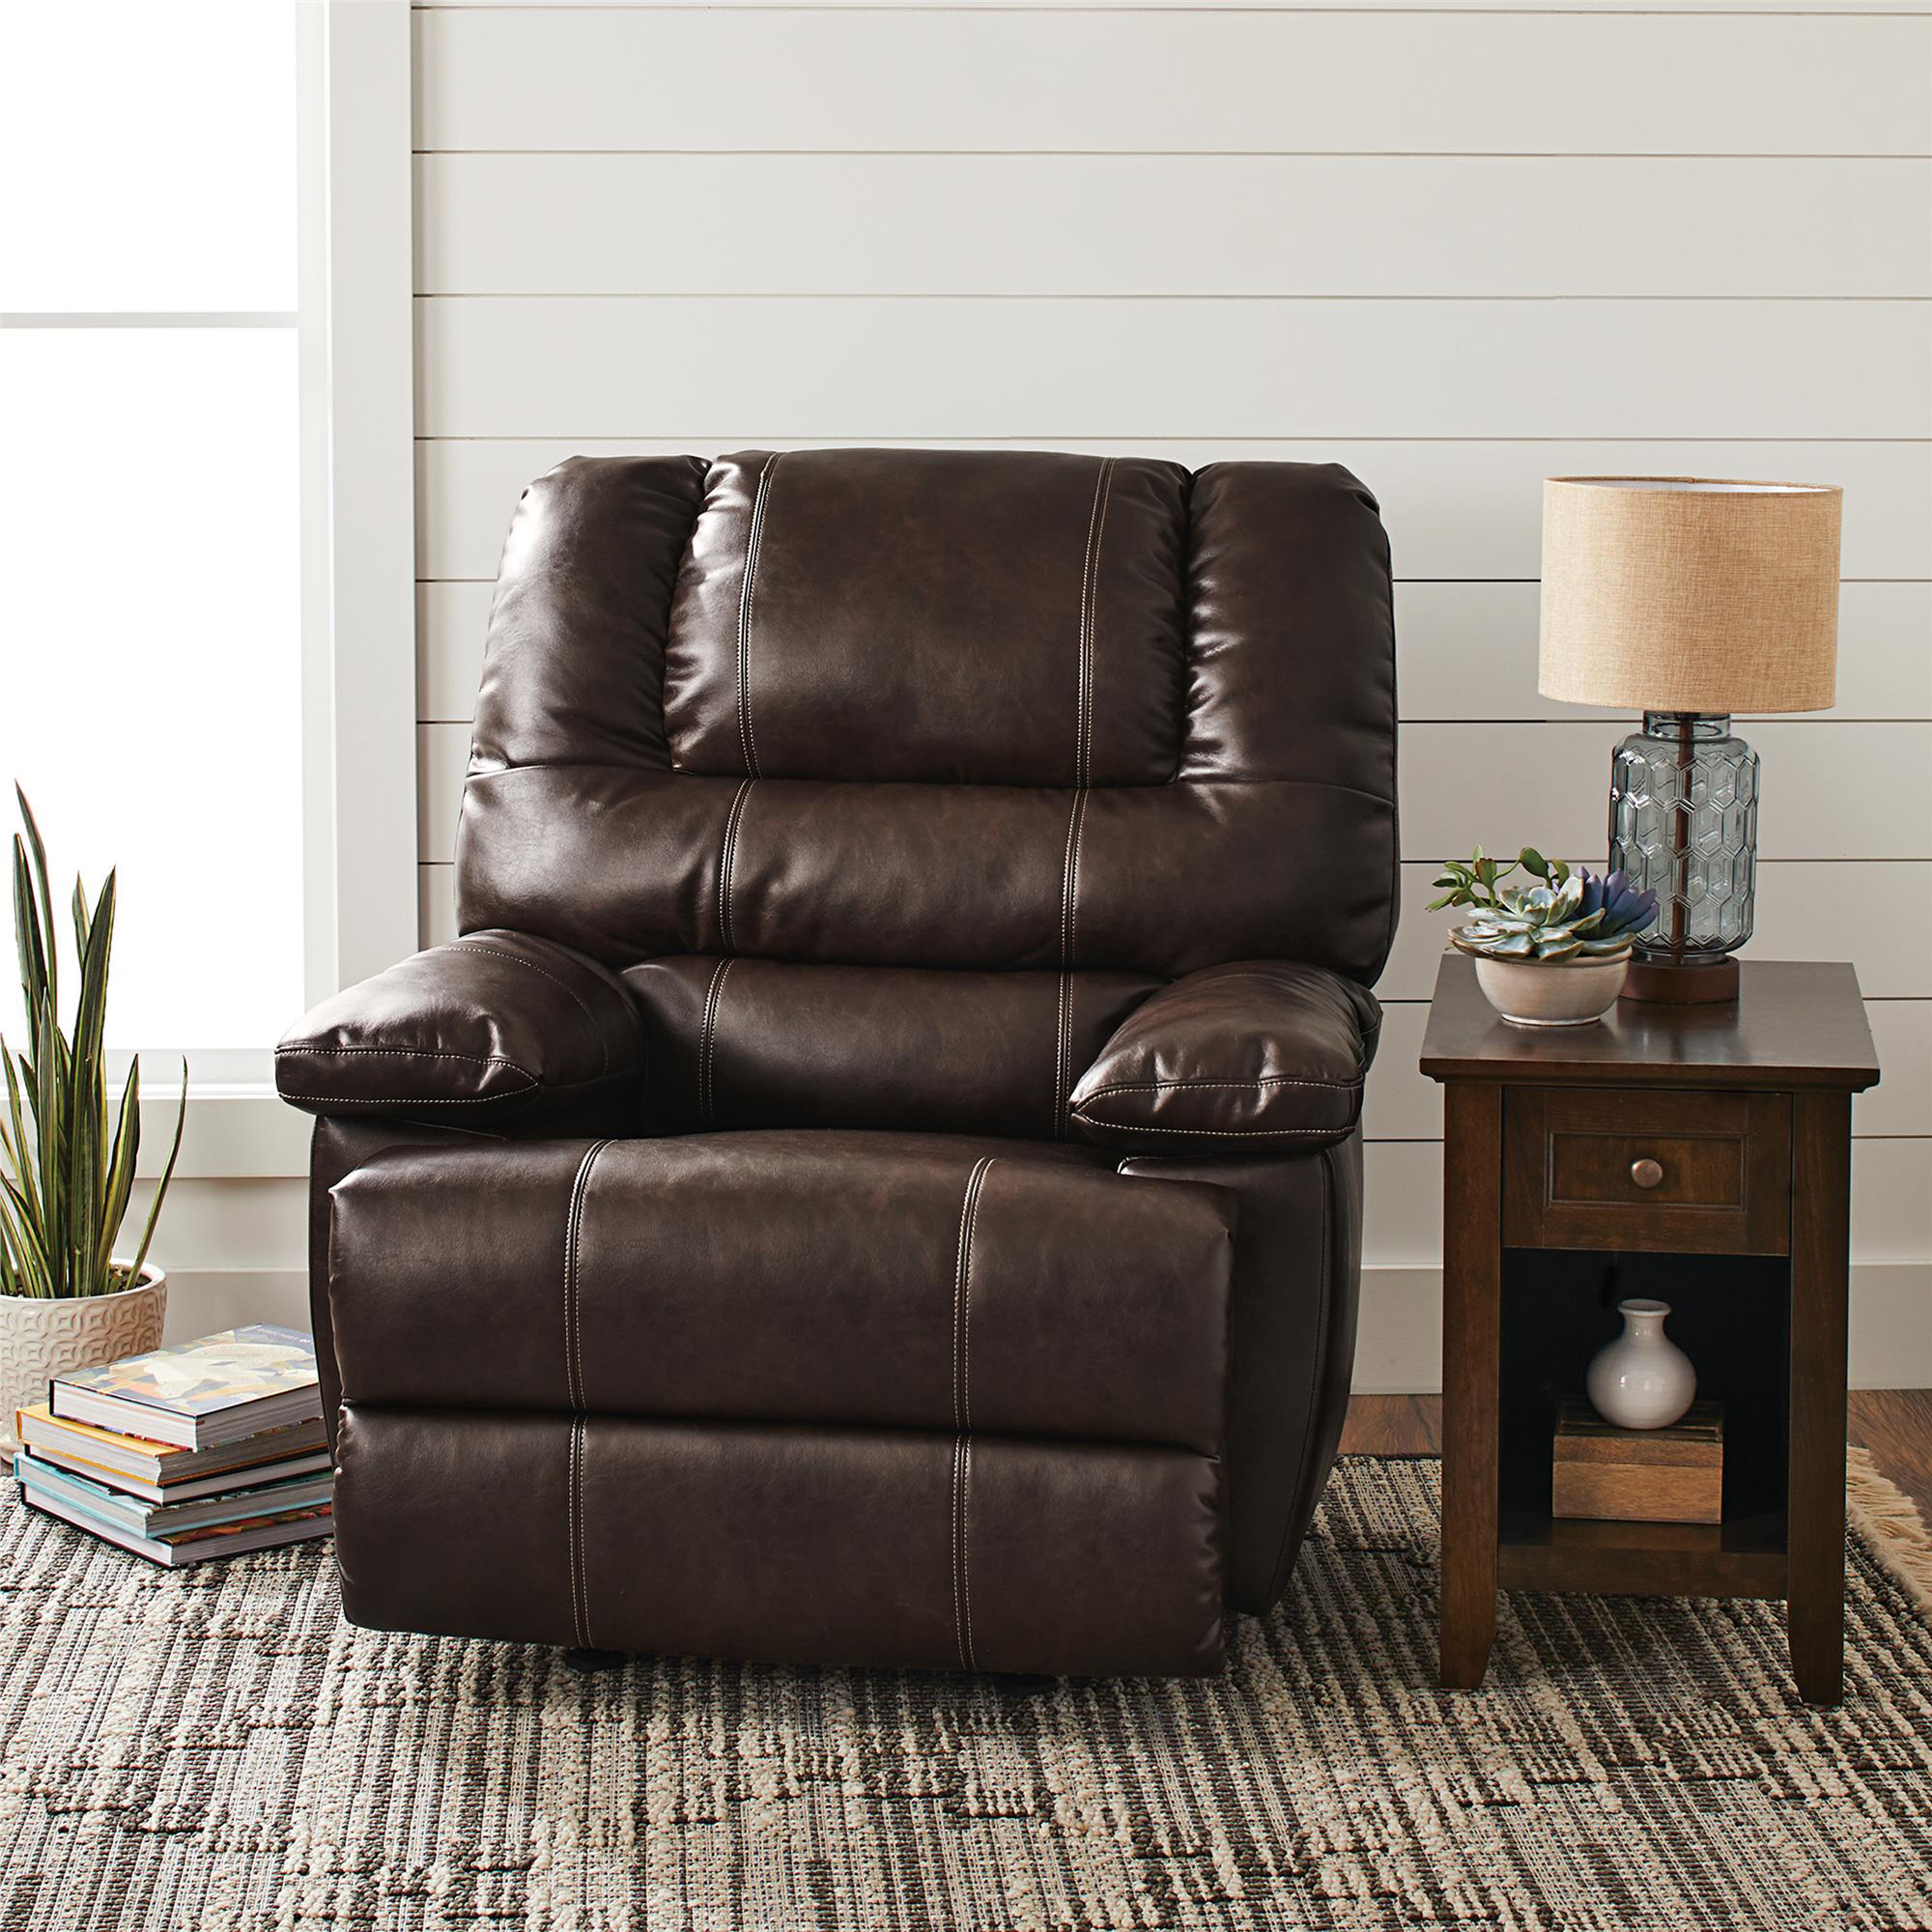 Better Homes & Gardens Moore Deluxe Rocking Recliner, Multiple Colors